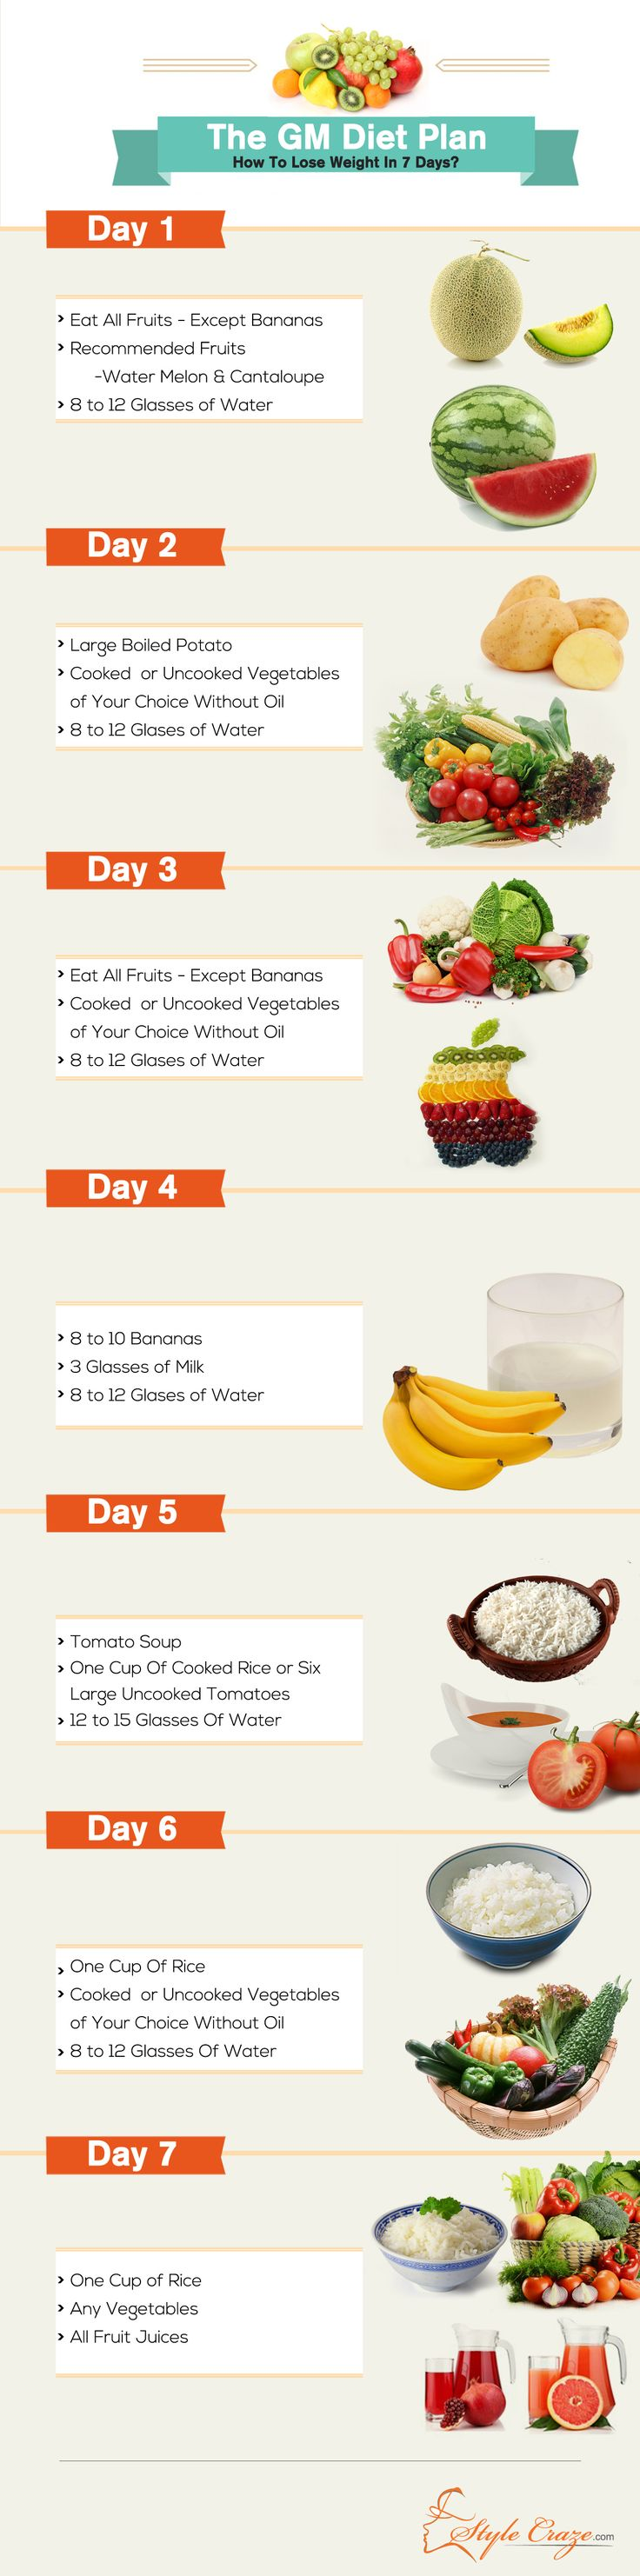 465 best diet methods images on pinterest the gm diet plan how to lose weight in 7 days http nvjuhfo Choice Image